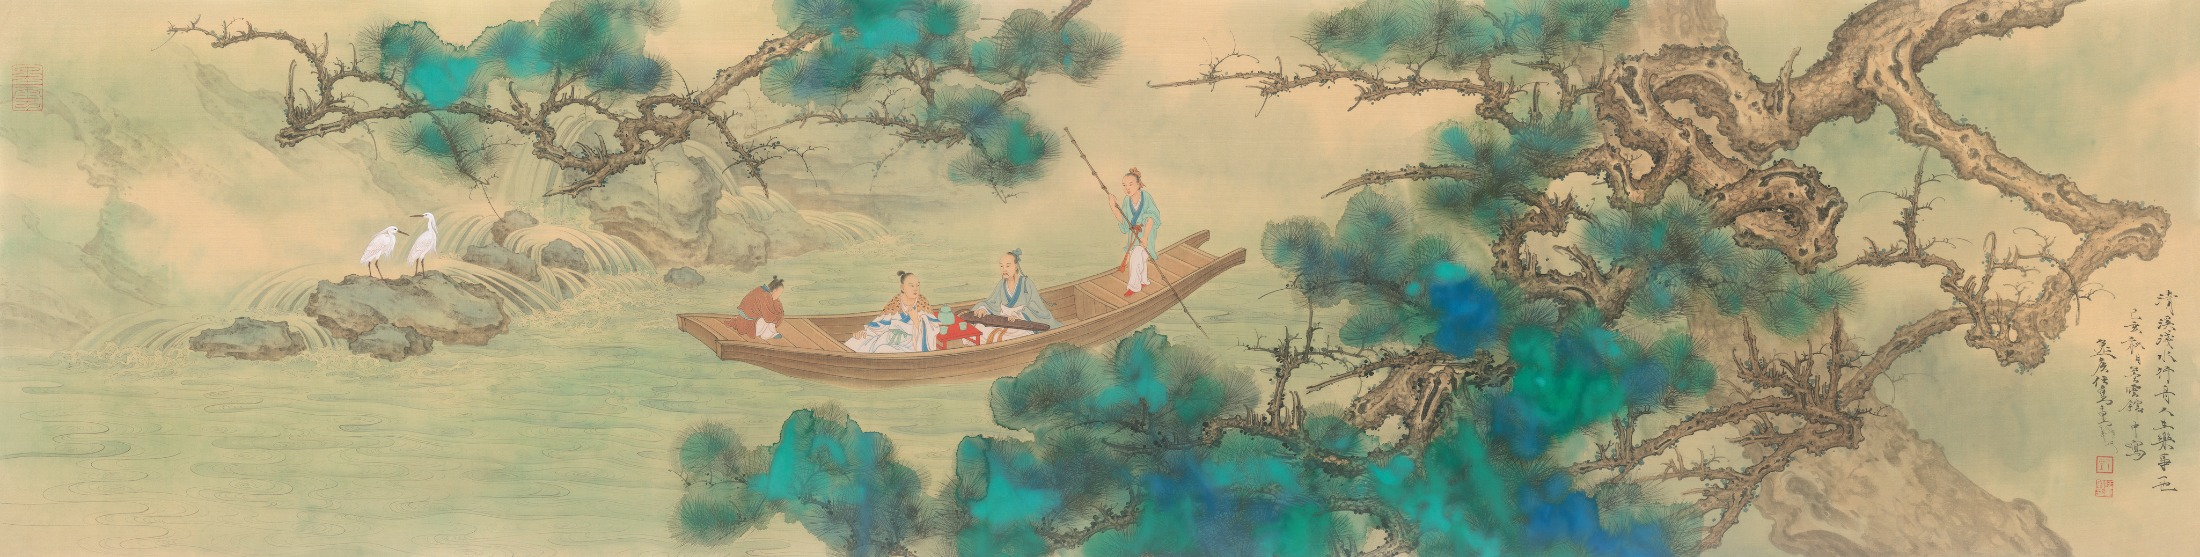 """""""Boating in a Limpid Stream."""" Painting by Ren Zhong"""